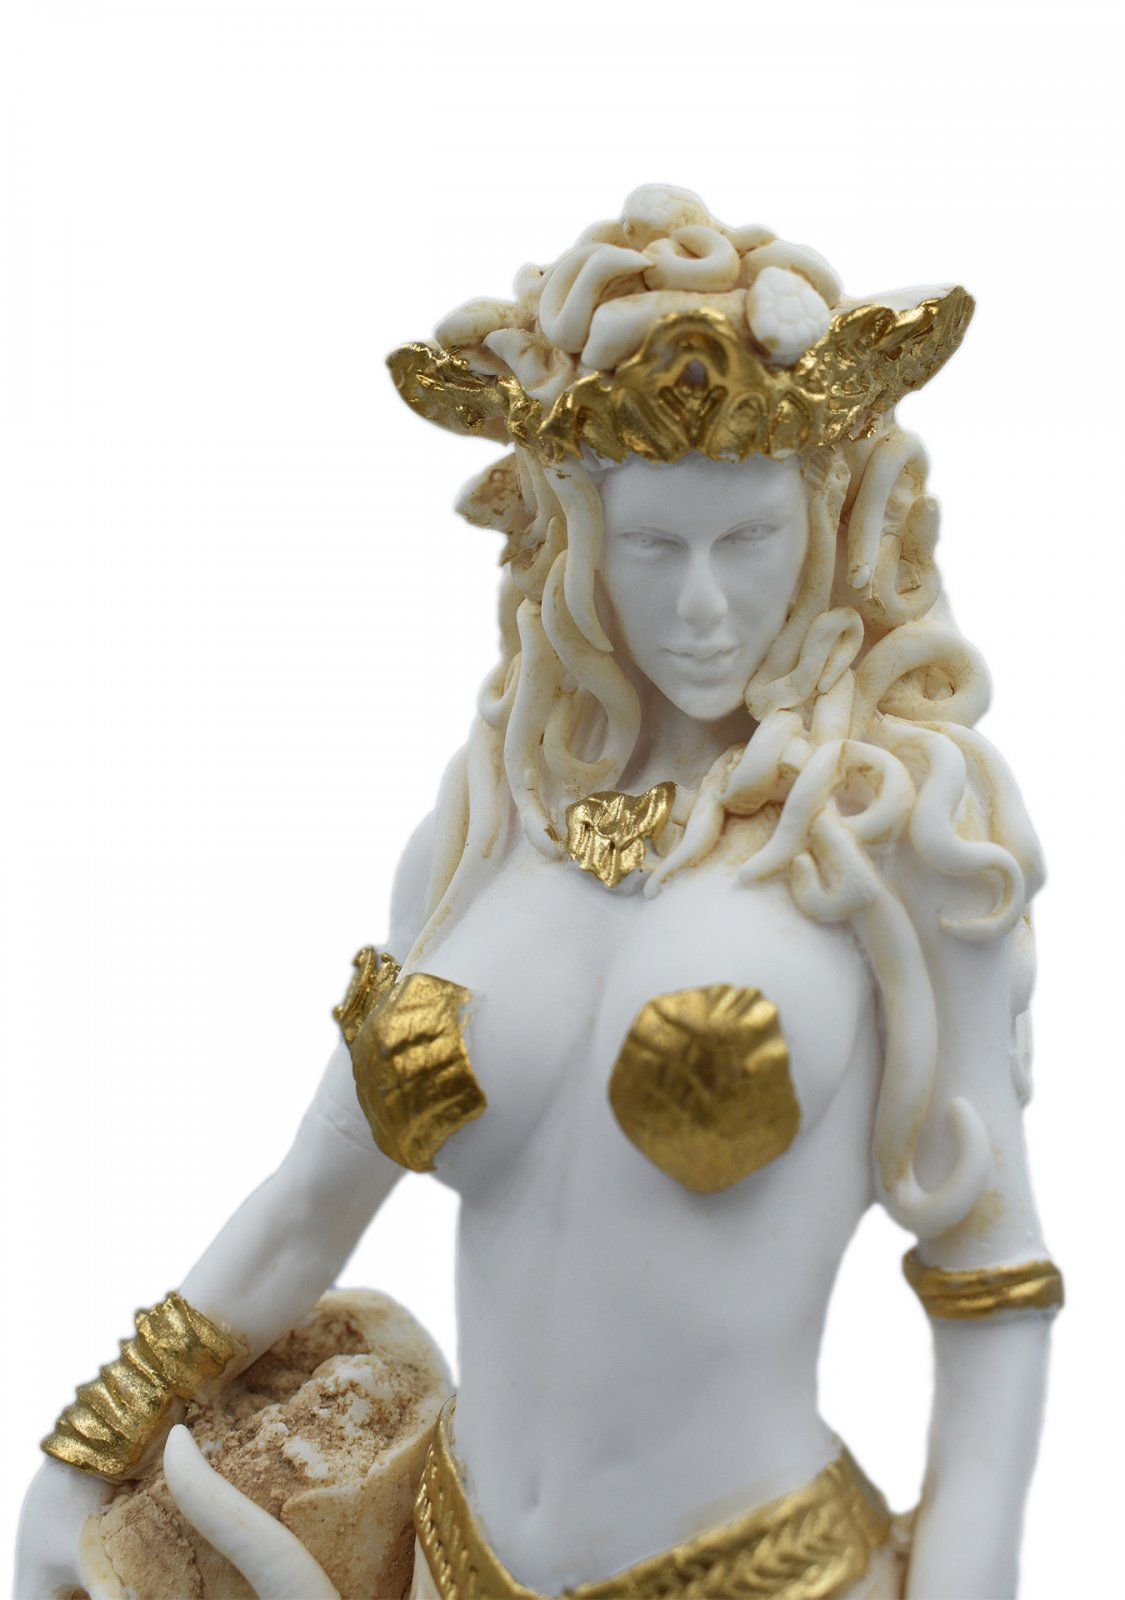 Medusa, Gorgo, greek alabaster statue in gold tone, the mythical creature